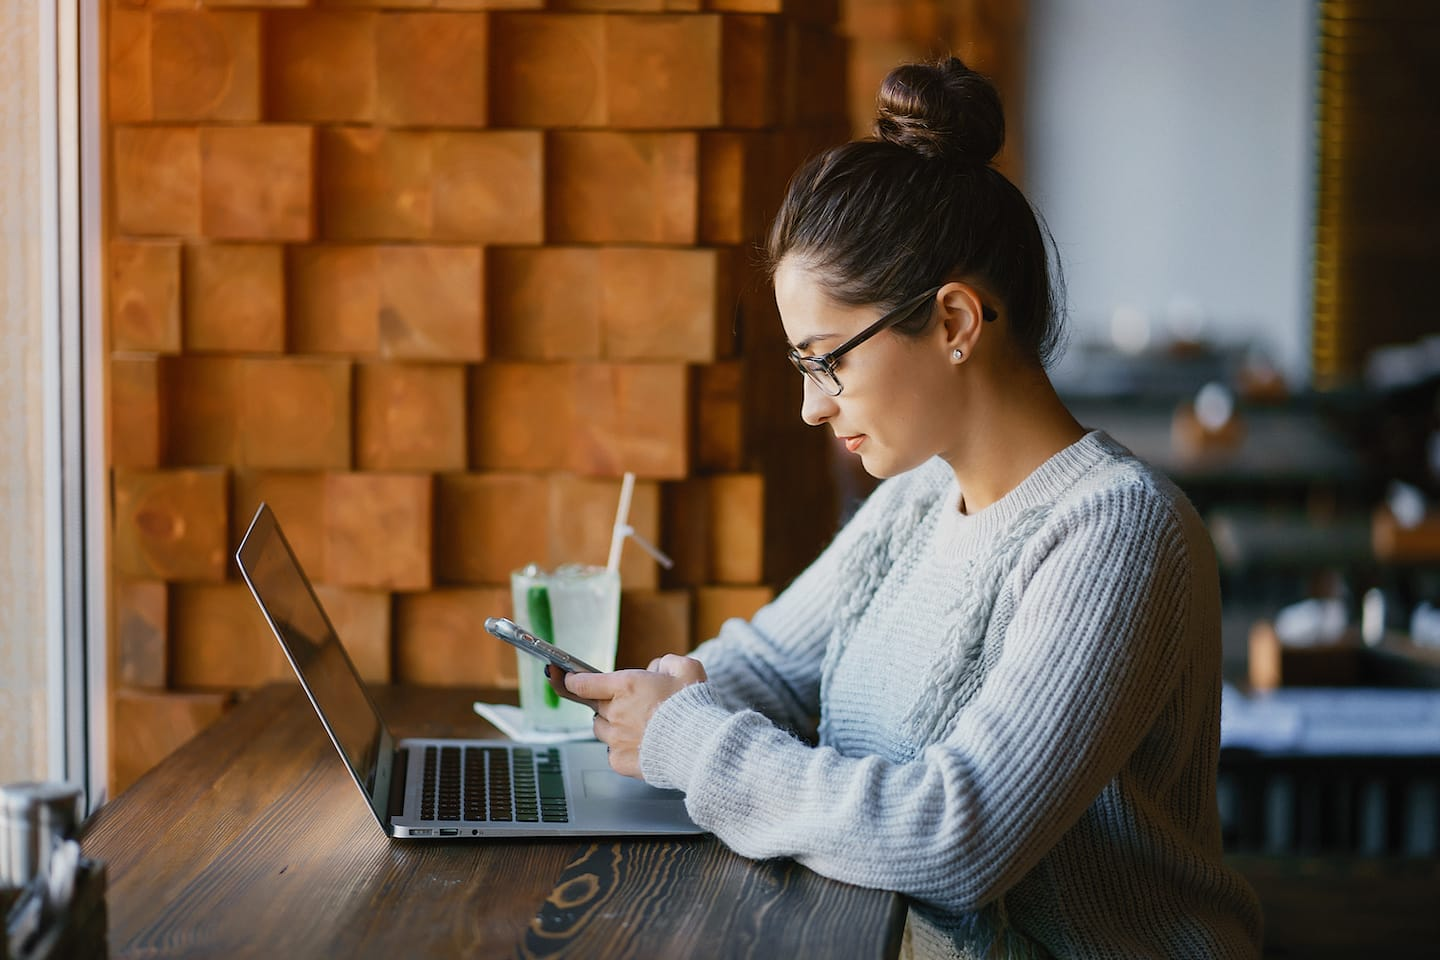 girl-working-on-a-laptop-at-a-restaurant-LP9X5KM